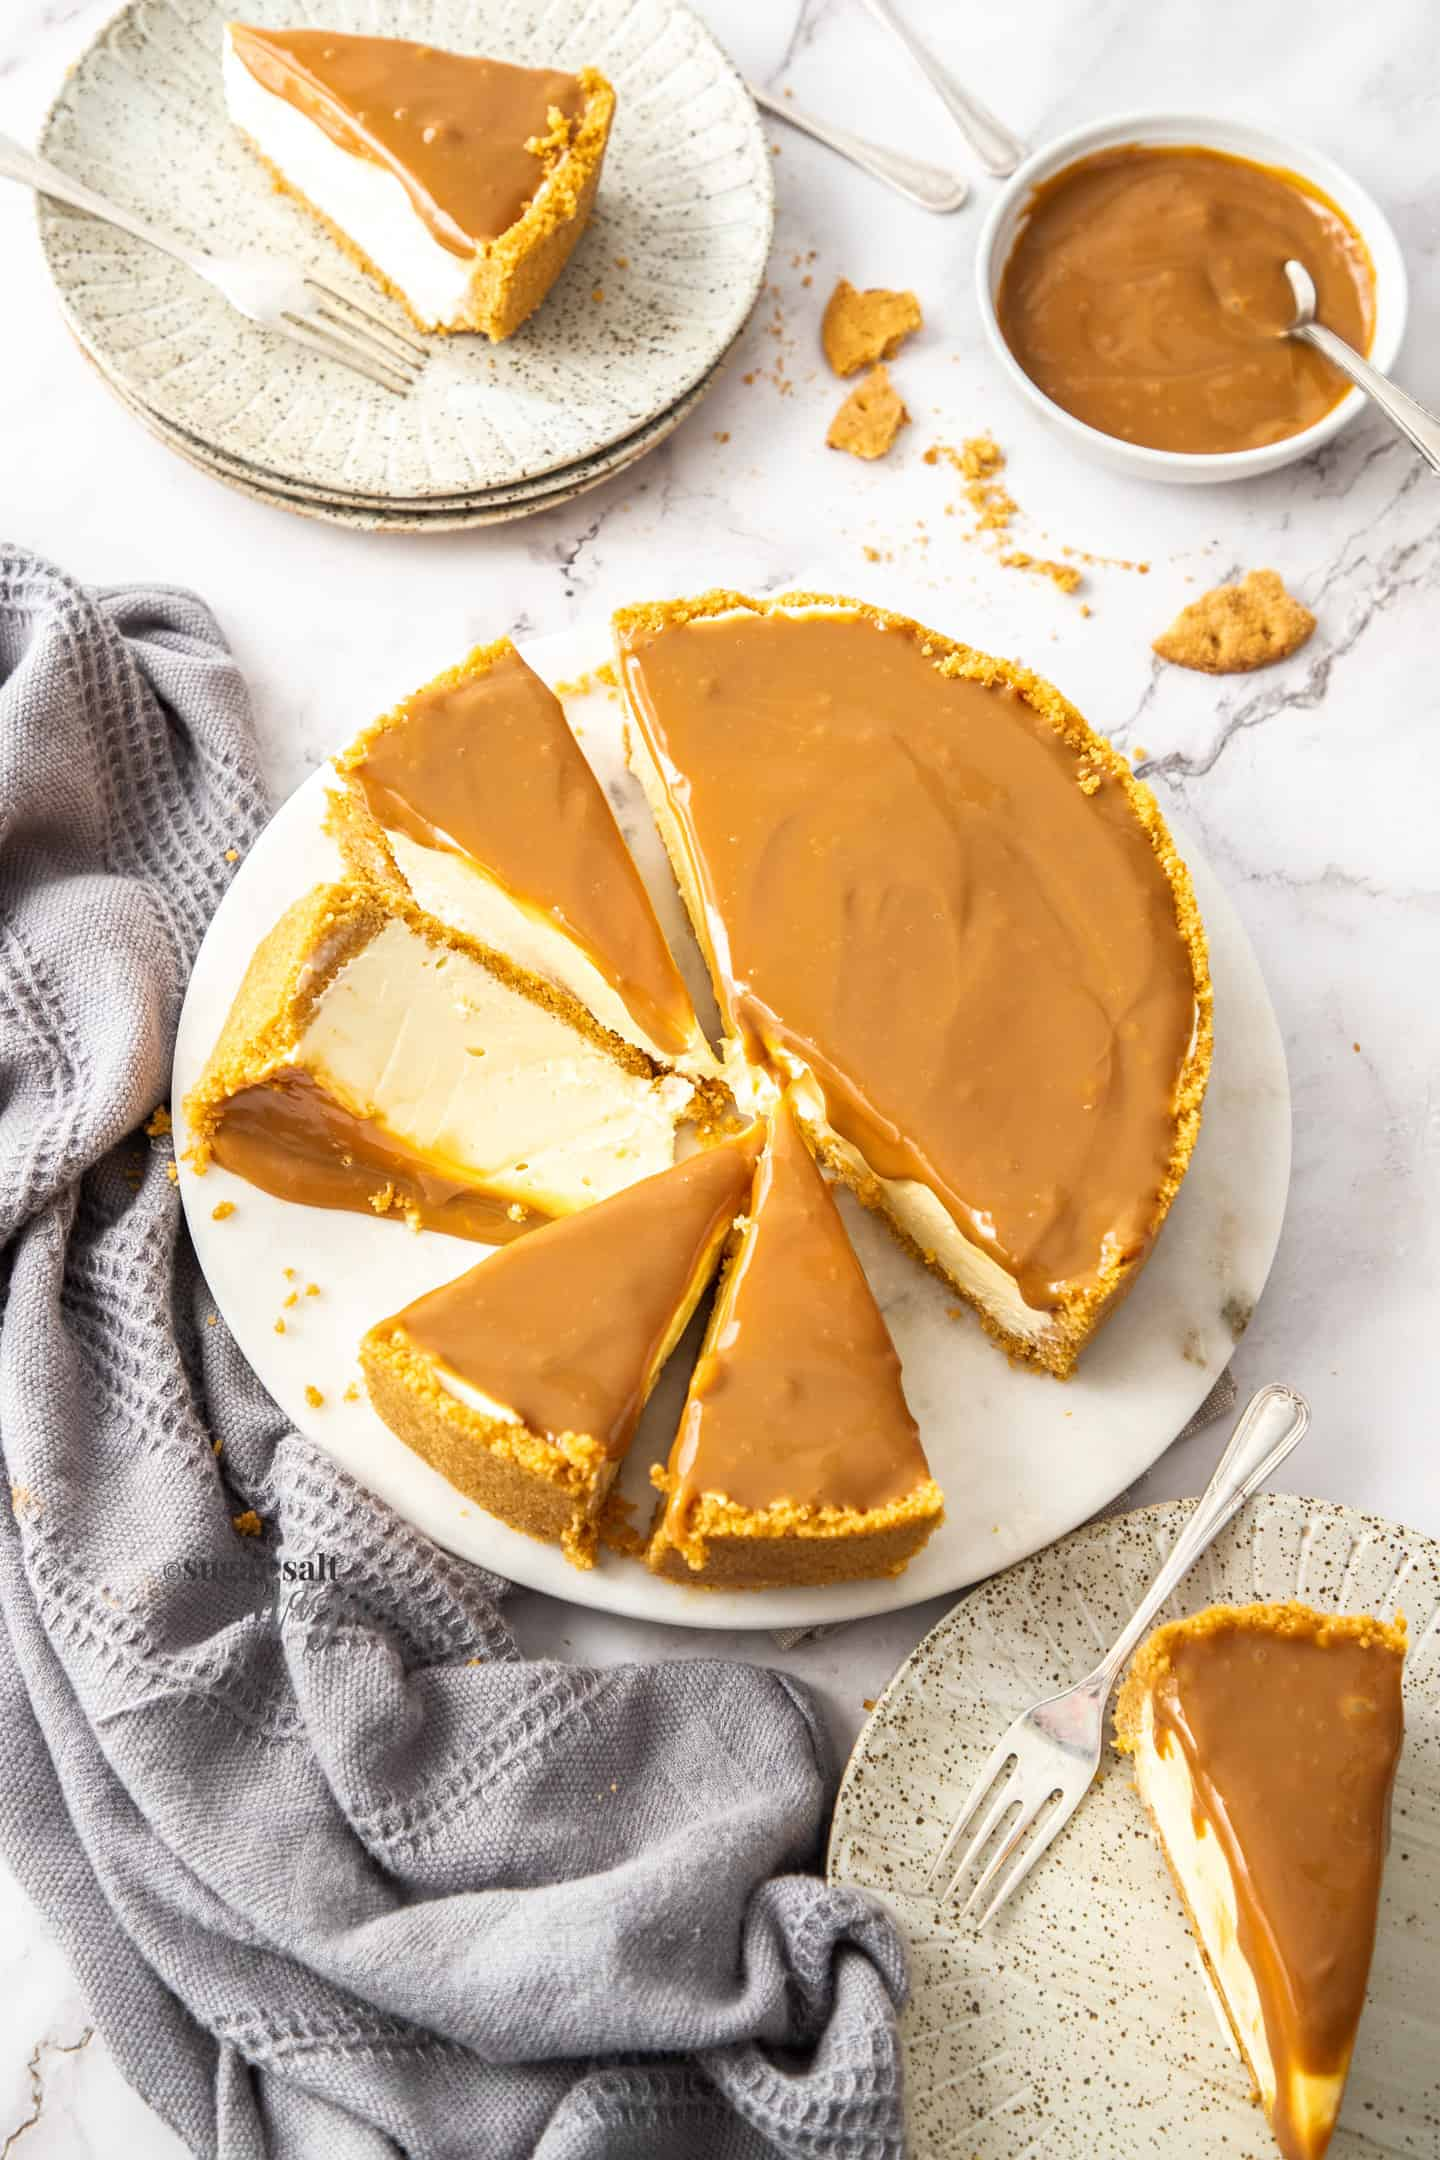 Top down view of a cheesecake topped with dulce de leche cut into slices.